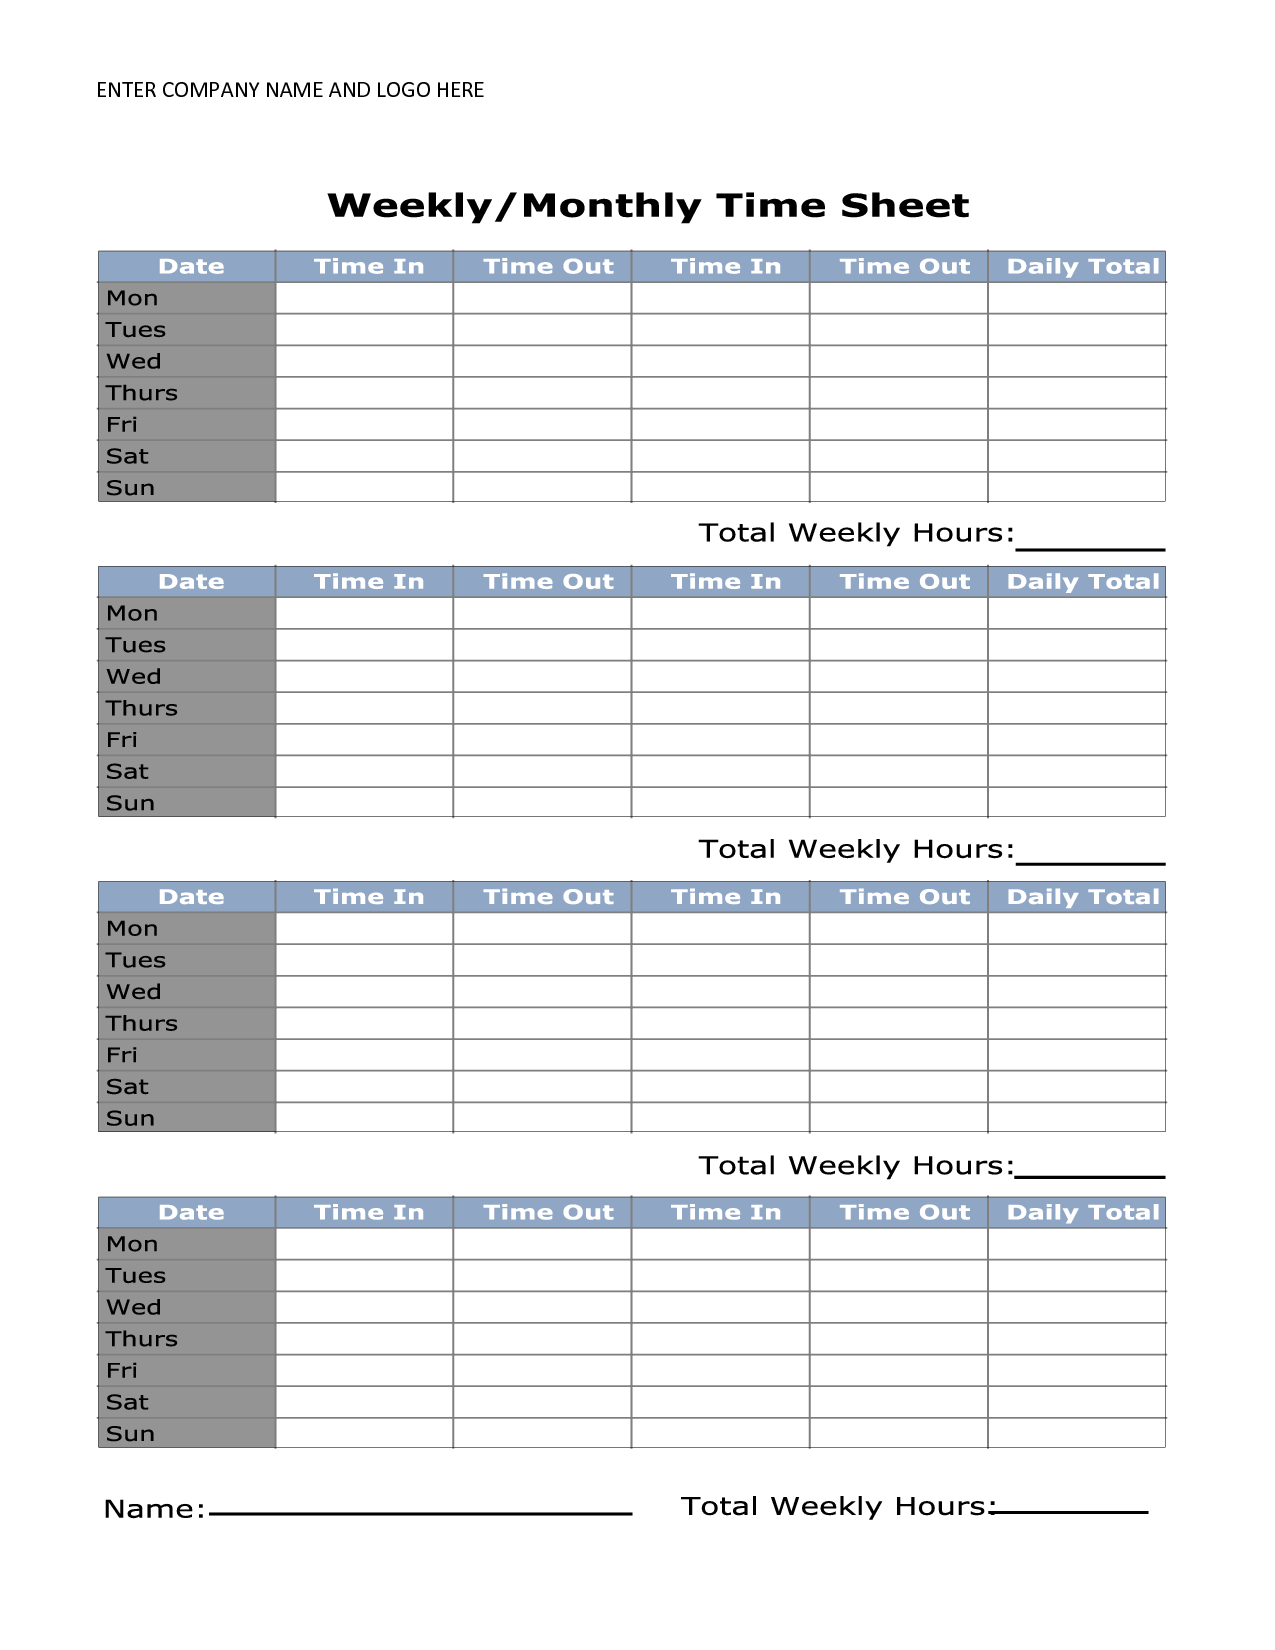 Sample Time Sheets to Print and Printable Time Sheets Gameshacksfree